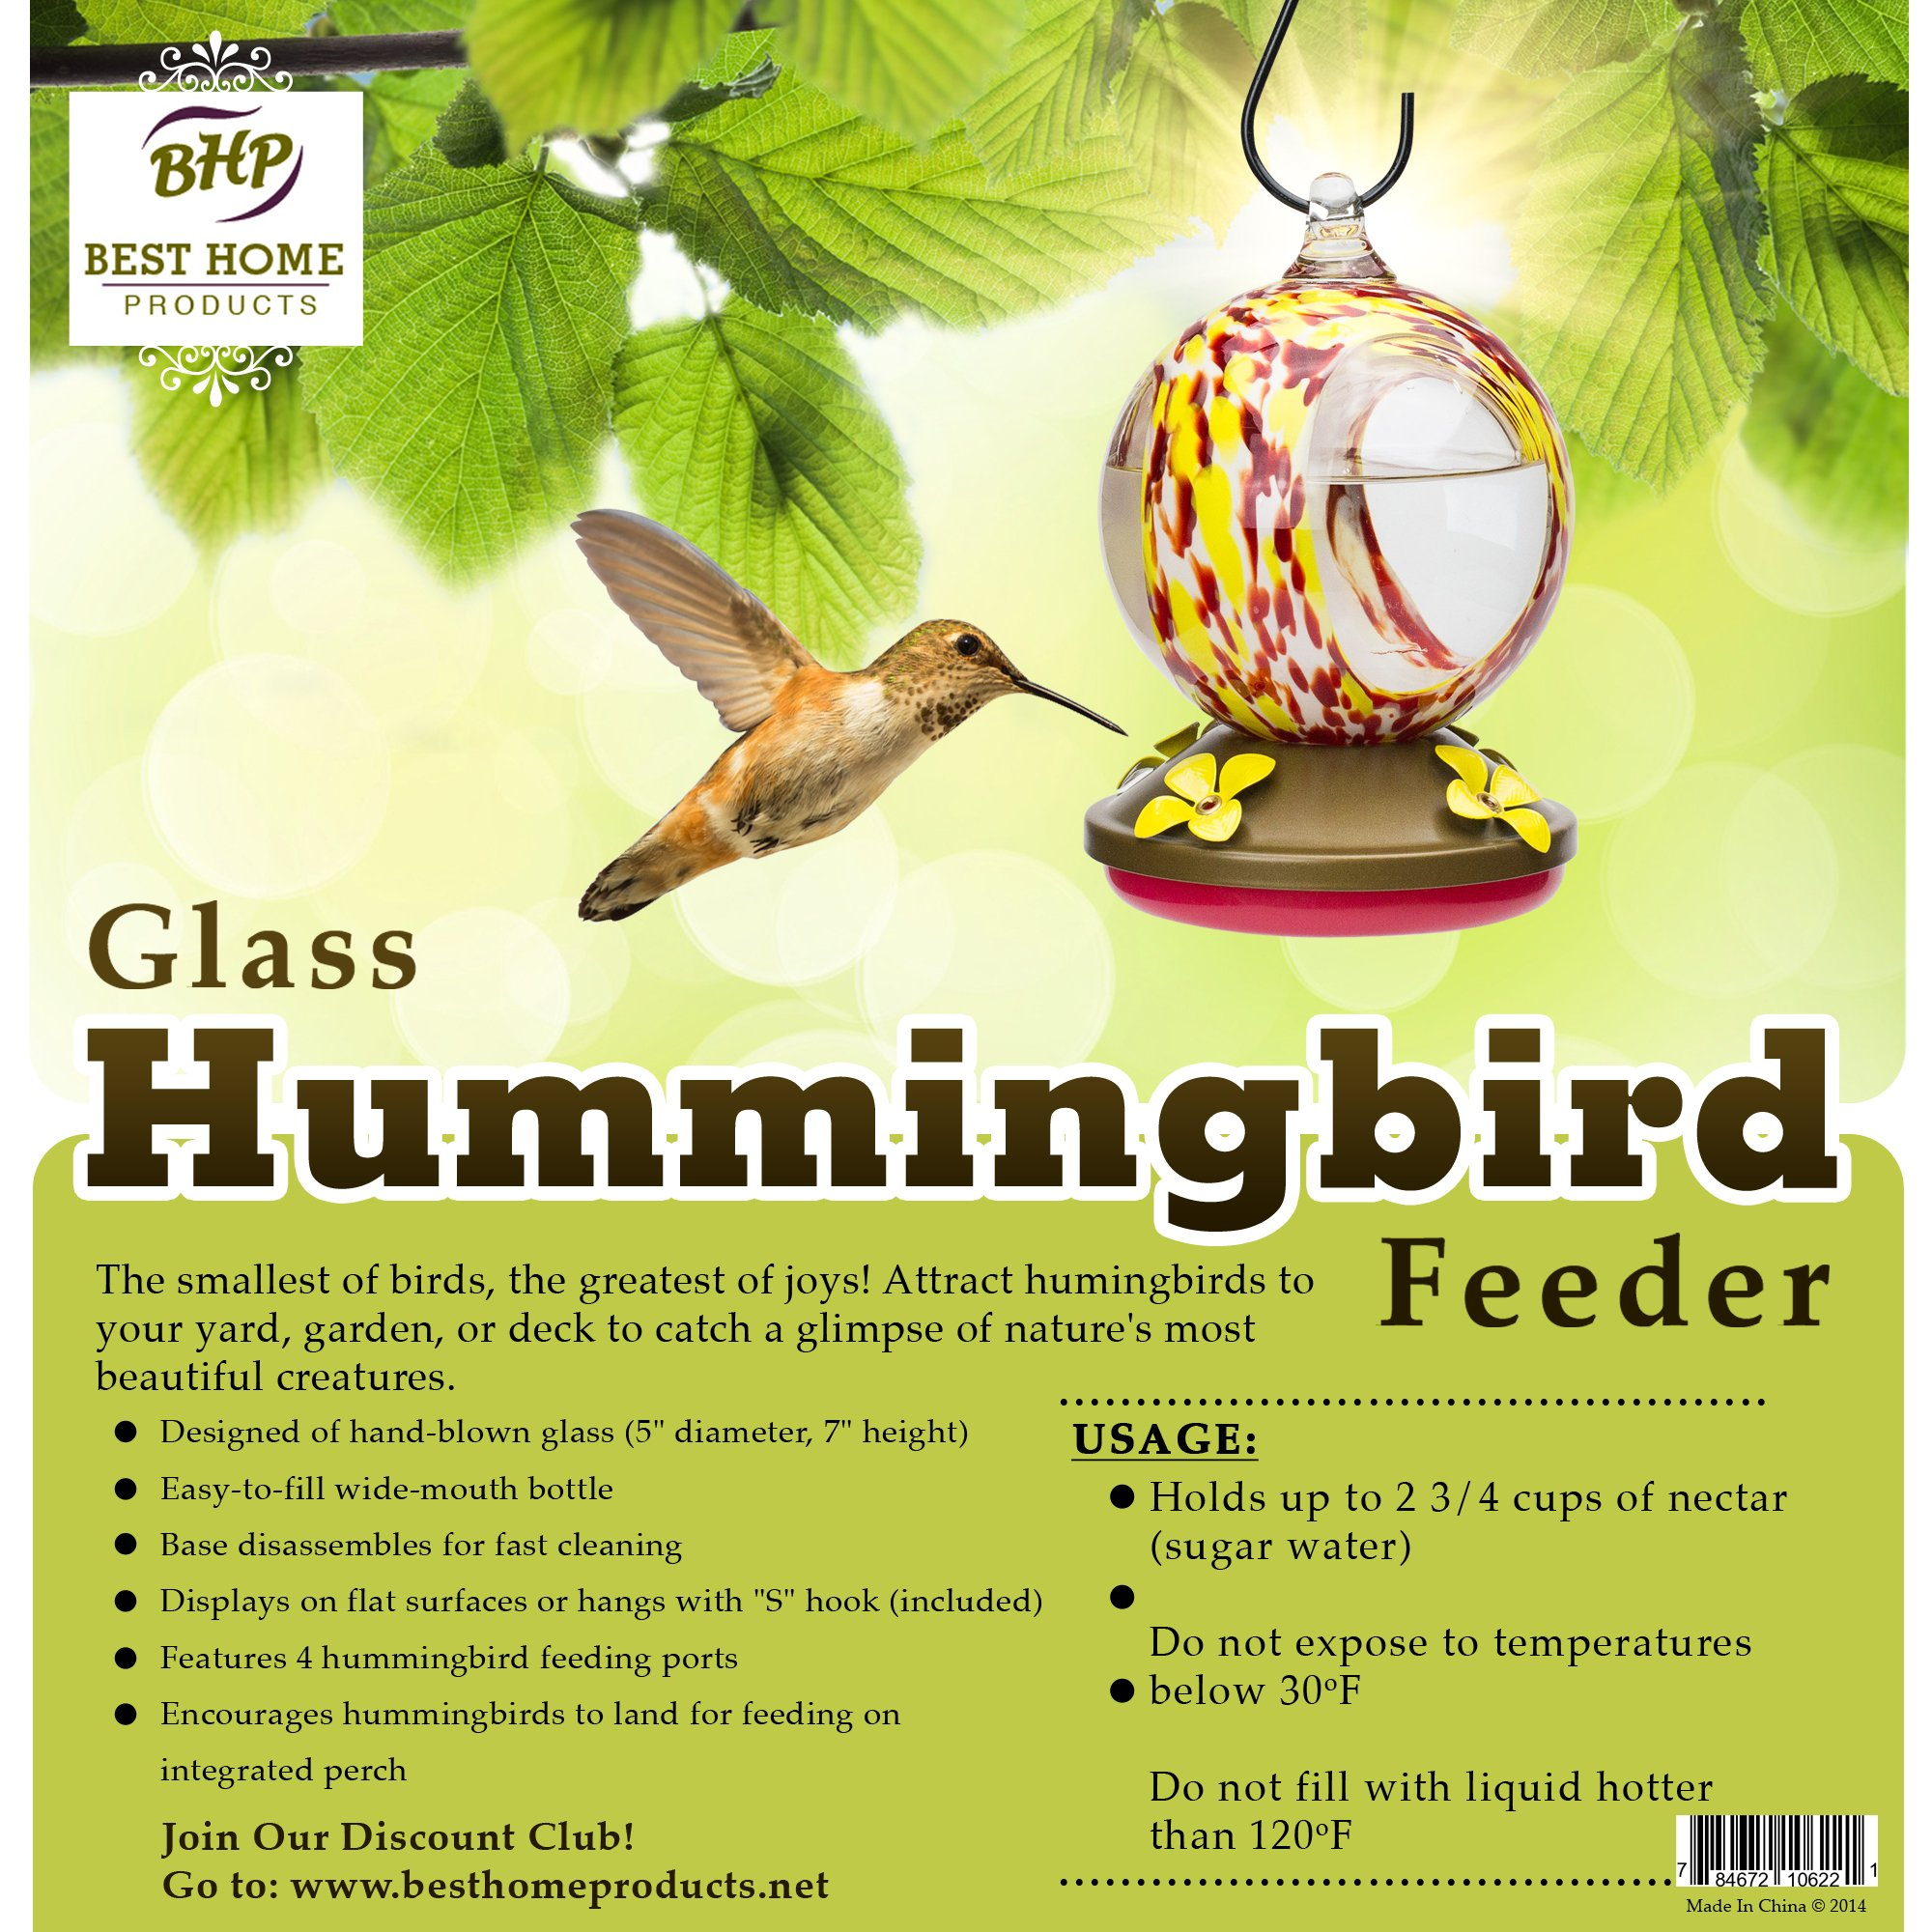 plastic ounce amazon garden dp feeder oz feeders pet apple hummingbird song com perky decorative